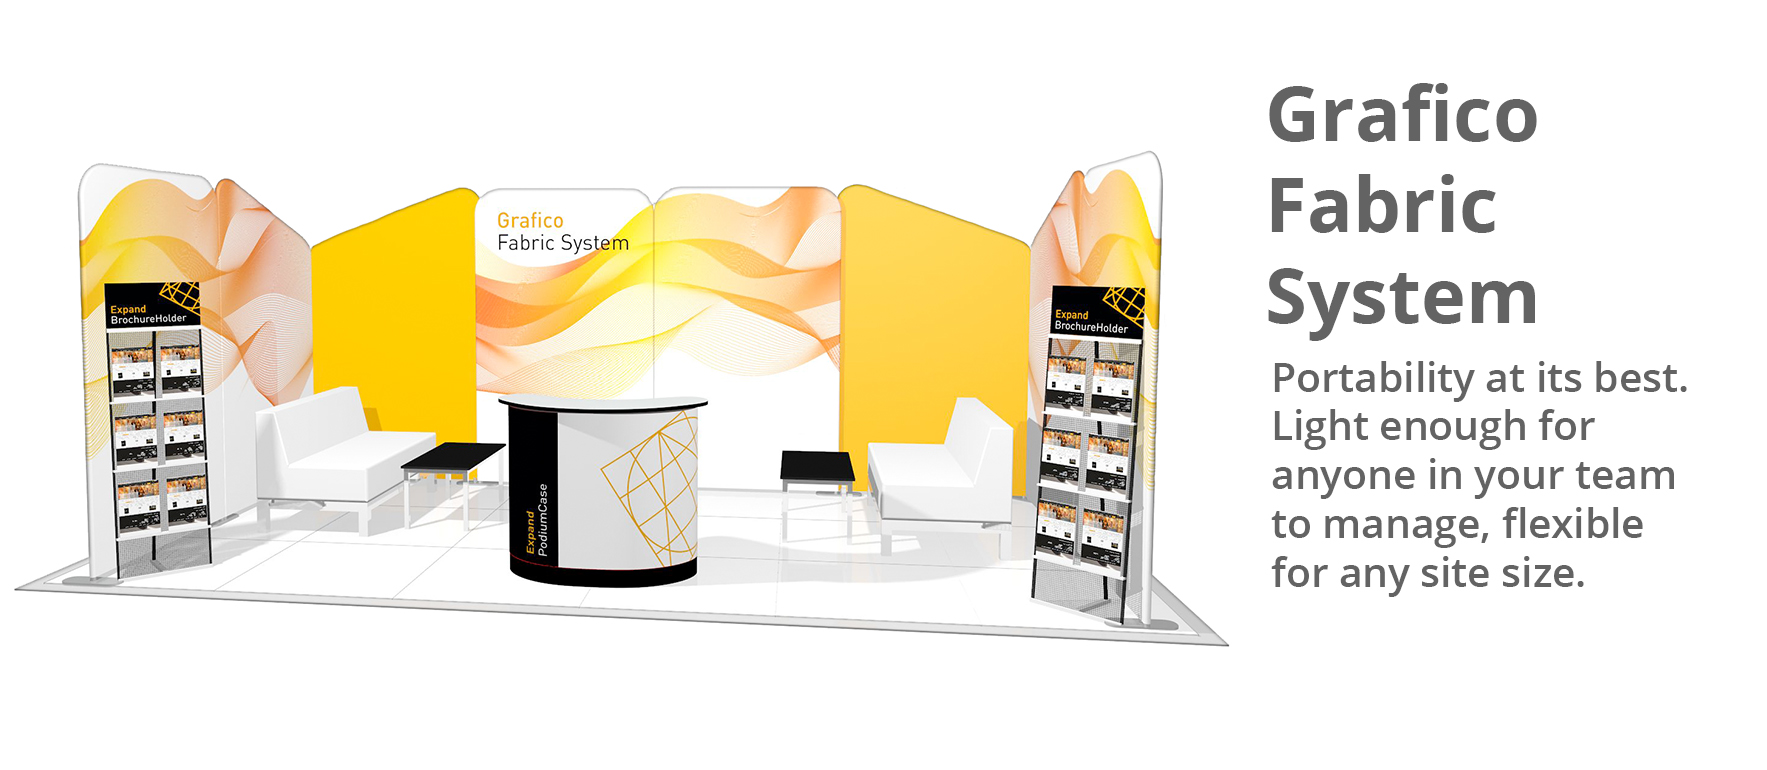 Introducing Our New Grafico Fabric System!